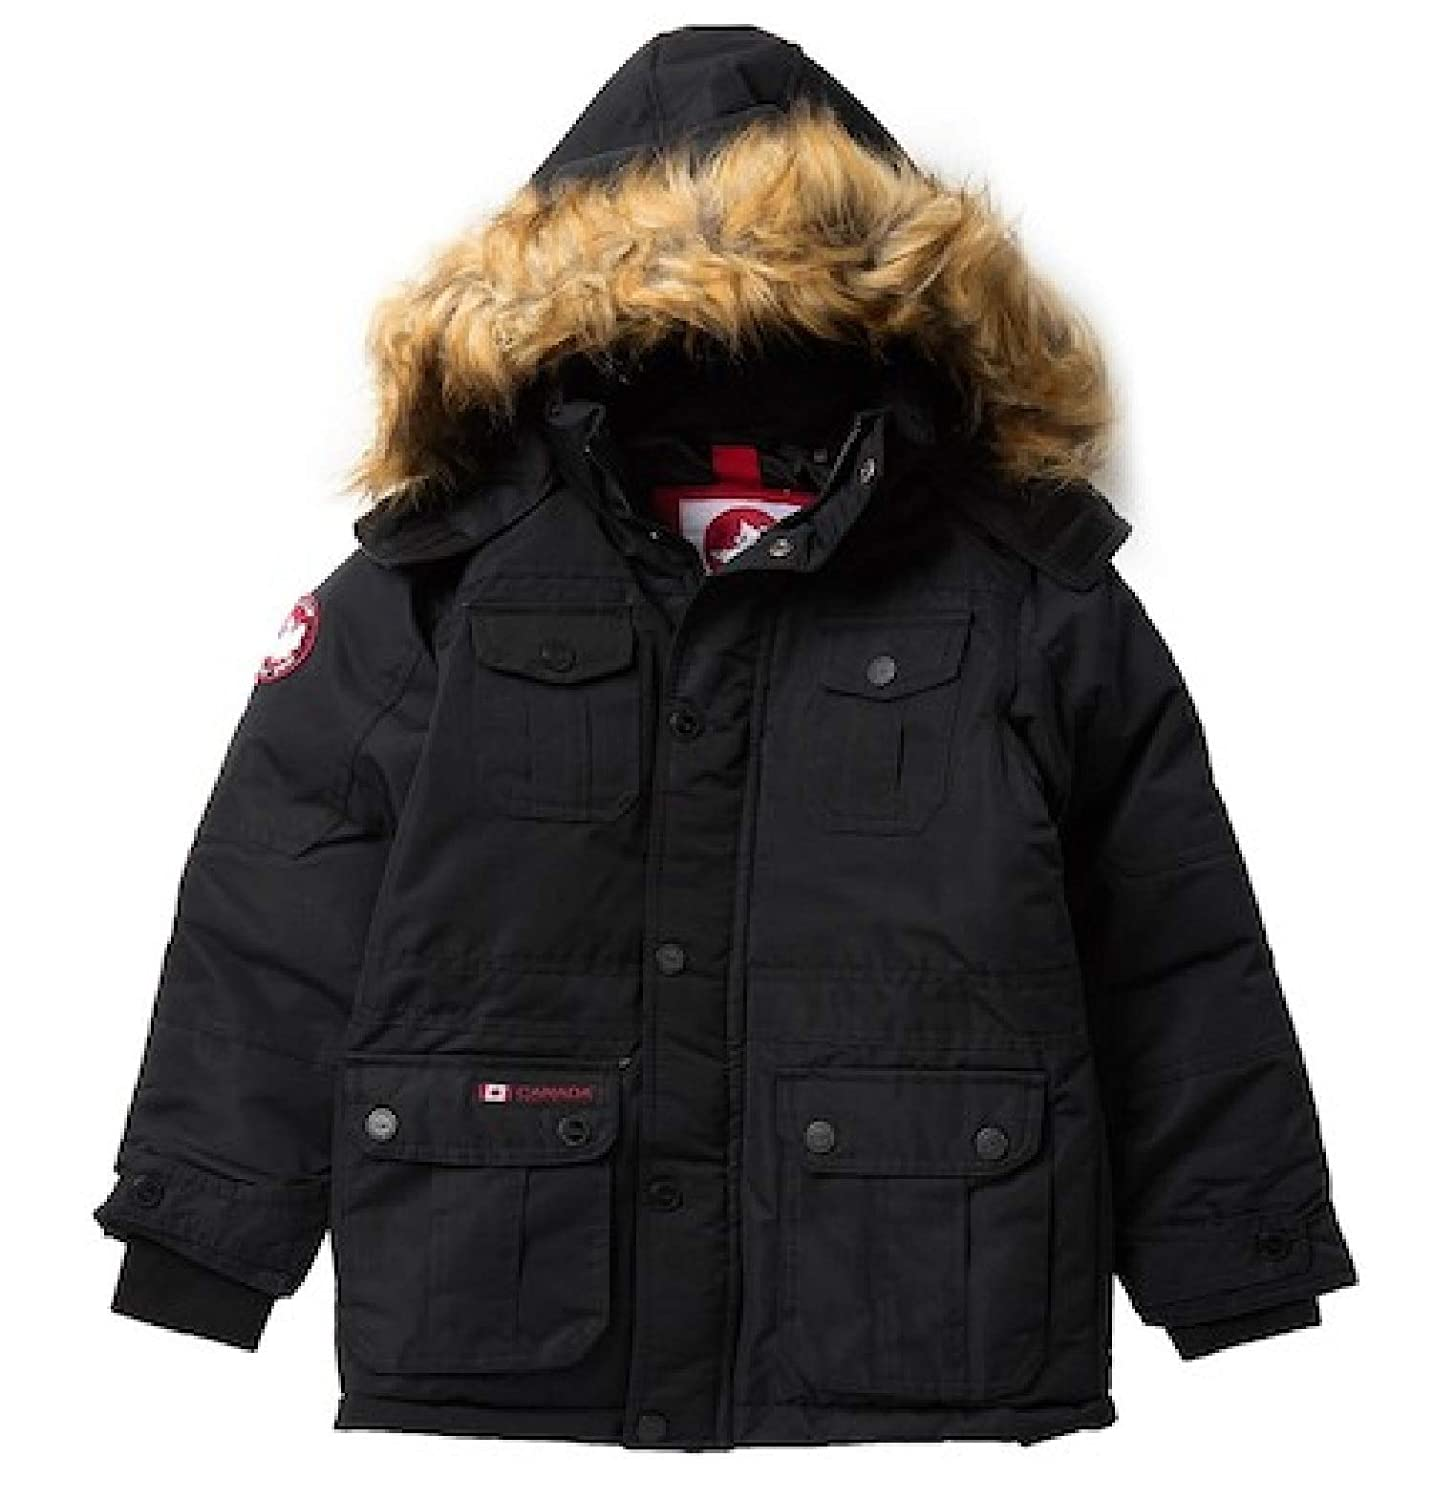 CANADA WEATHER GEAR Big Boys Faux Fur Jacket